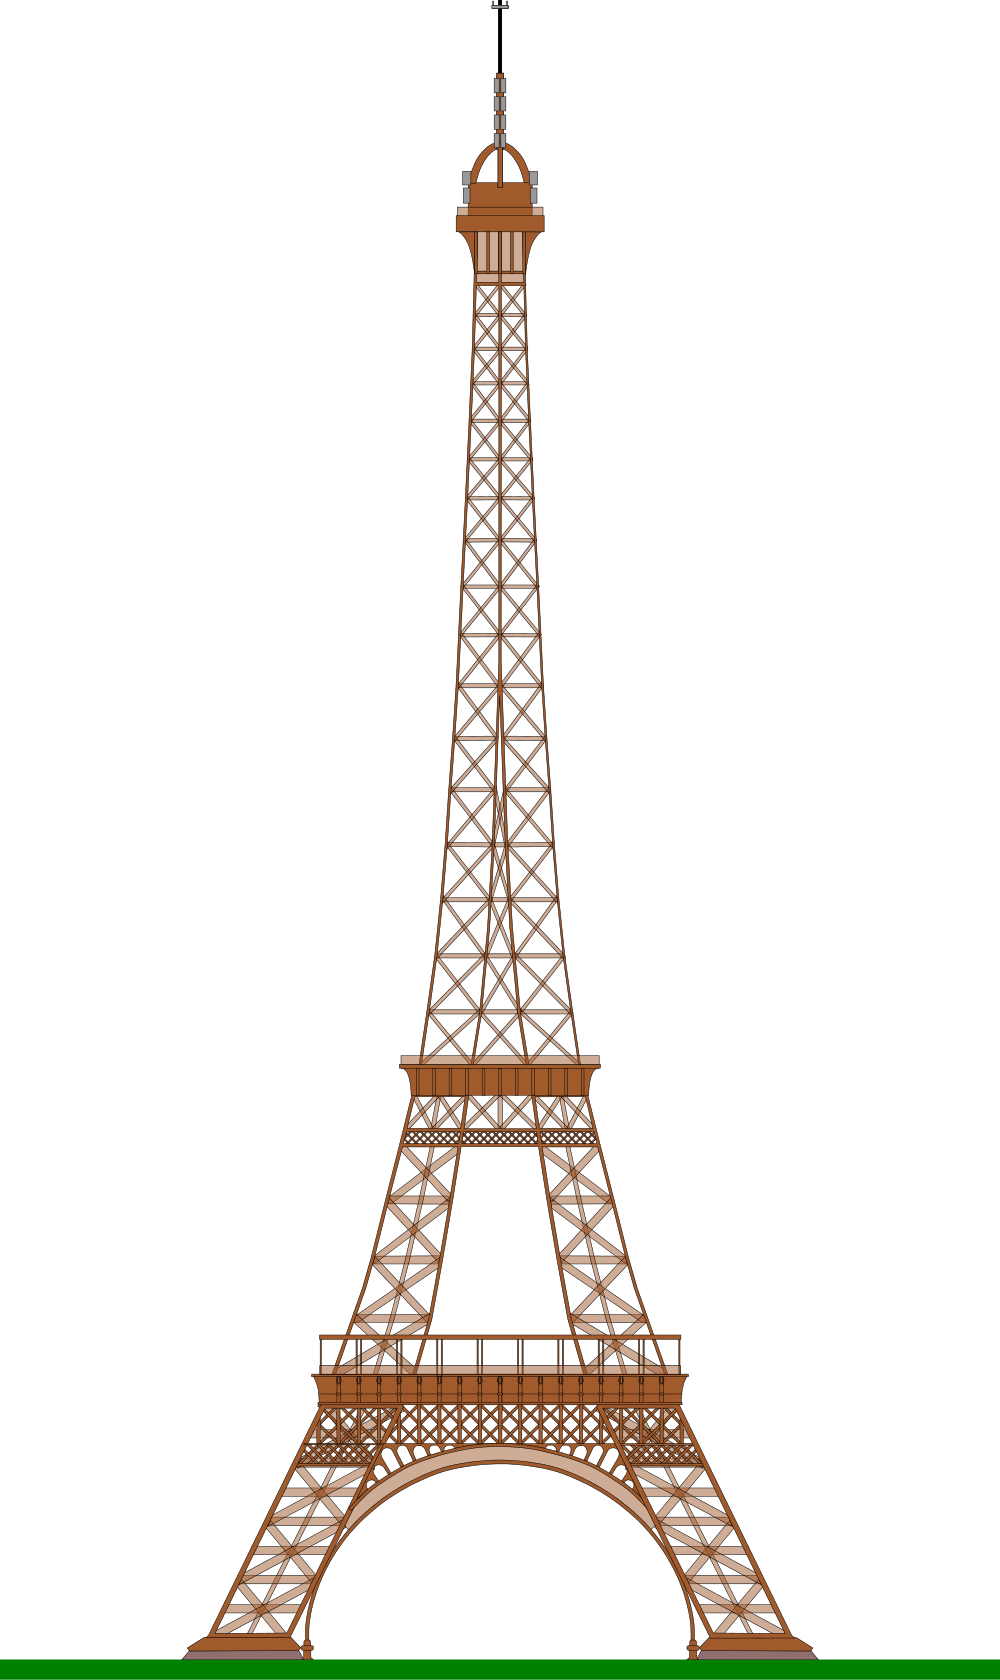 Tower svg #19, Download drawings